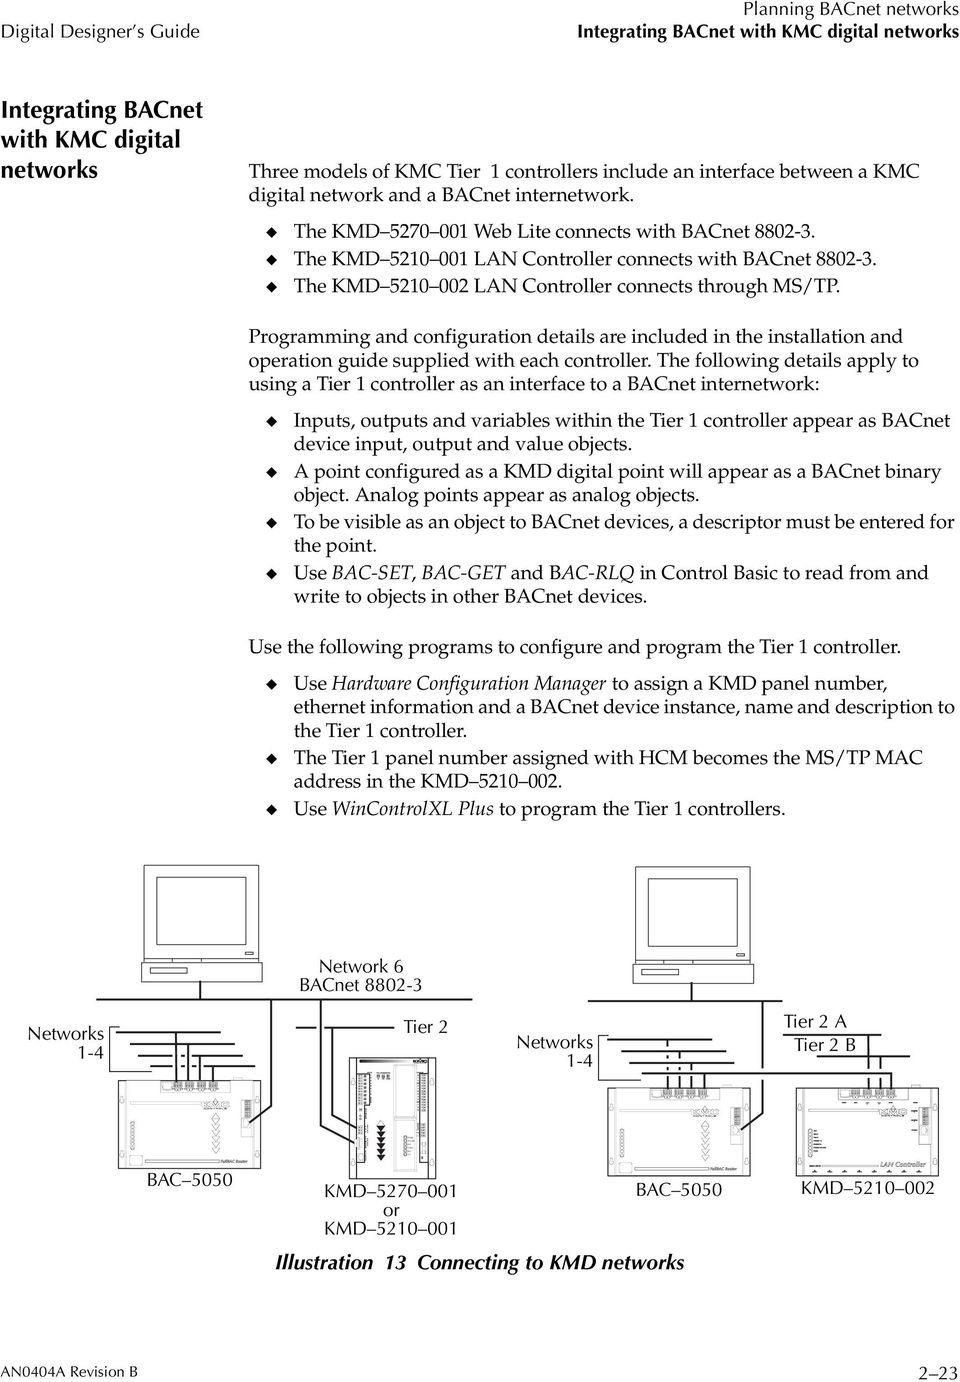 internetwork. The KMD 5270 001 Web Lite connects with BACnet 8802-3. The KMD 5210 001 LAN Controller connects with BACnet 8802-3. The KMD 5210 002 LAN Controller connects through MS/TP.